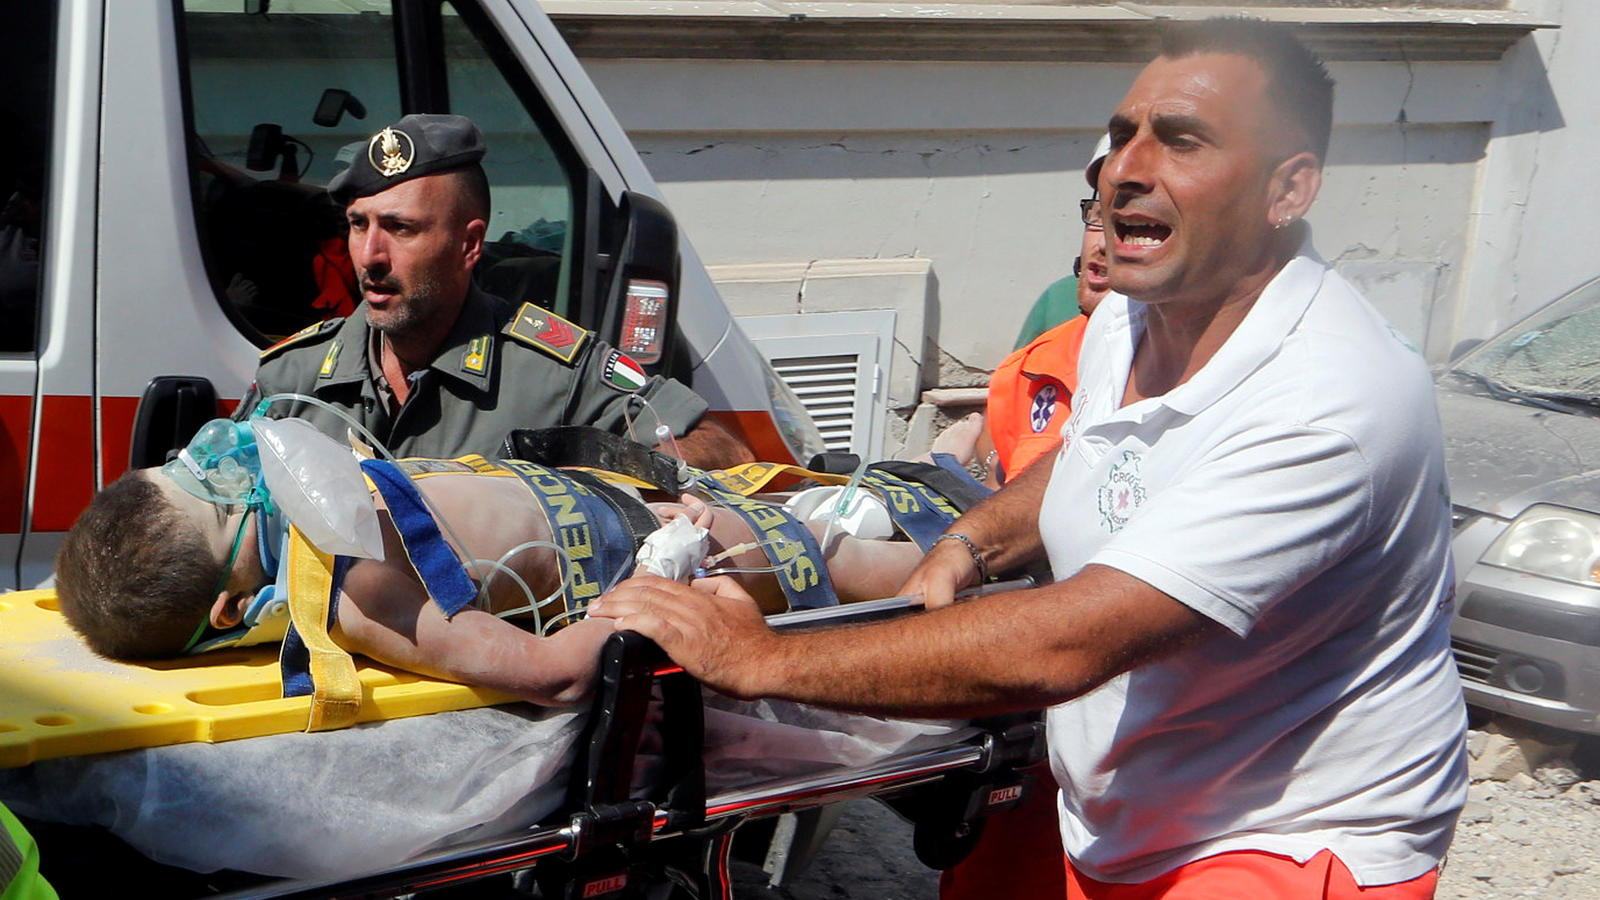 Rescue workers carry a child after an earthquake hit the island of Ischia, in Naples, Italy August 22, 2017. REUTERS/Ciro De Luca